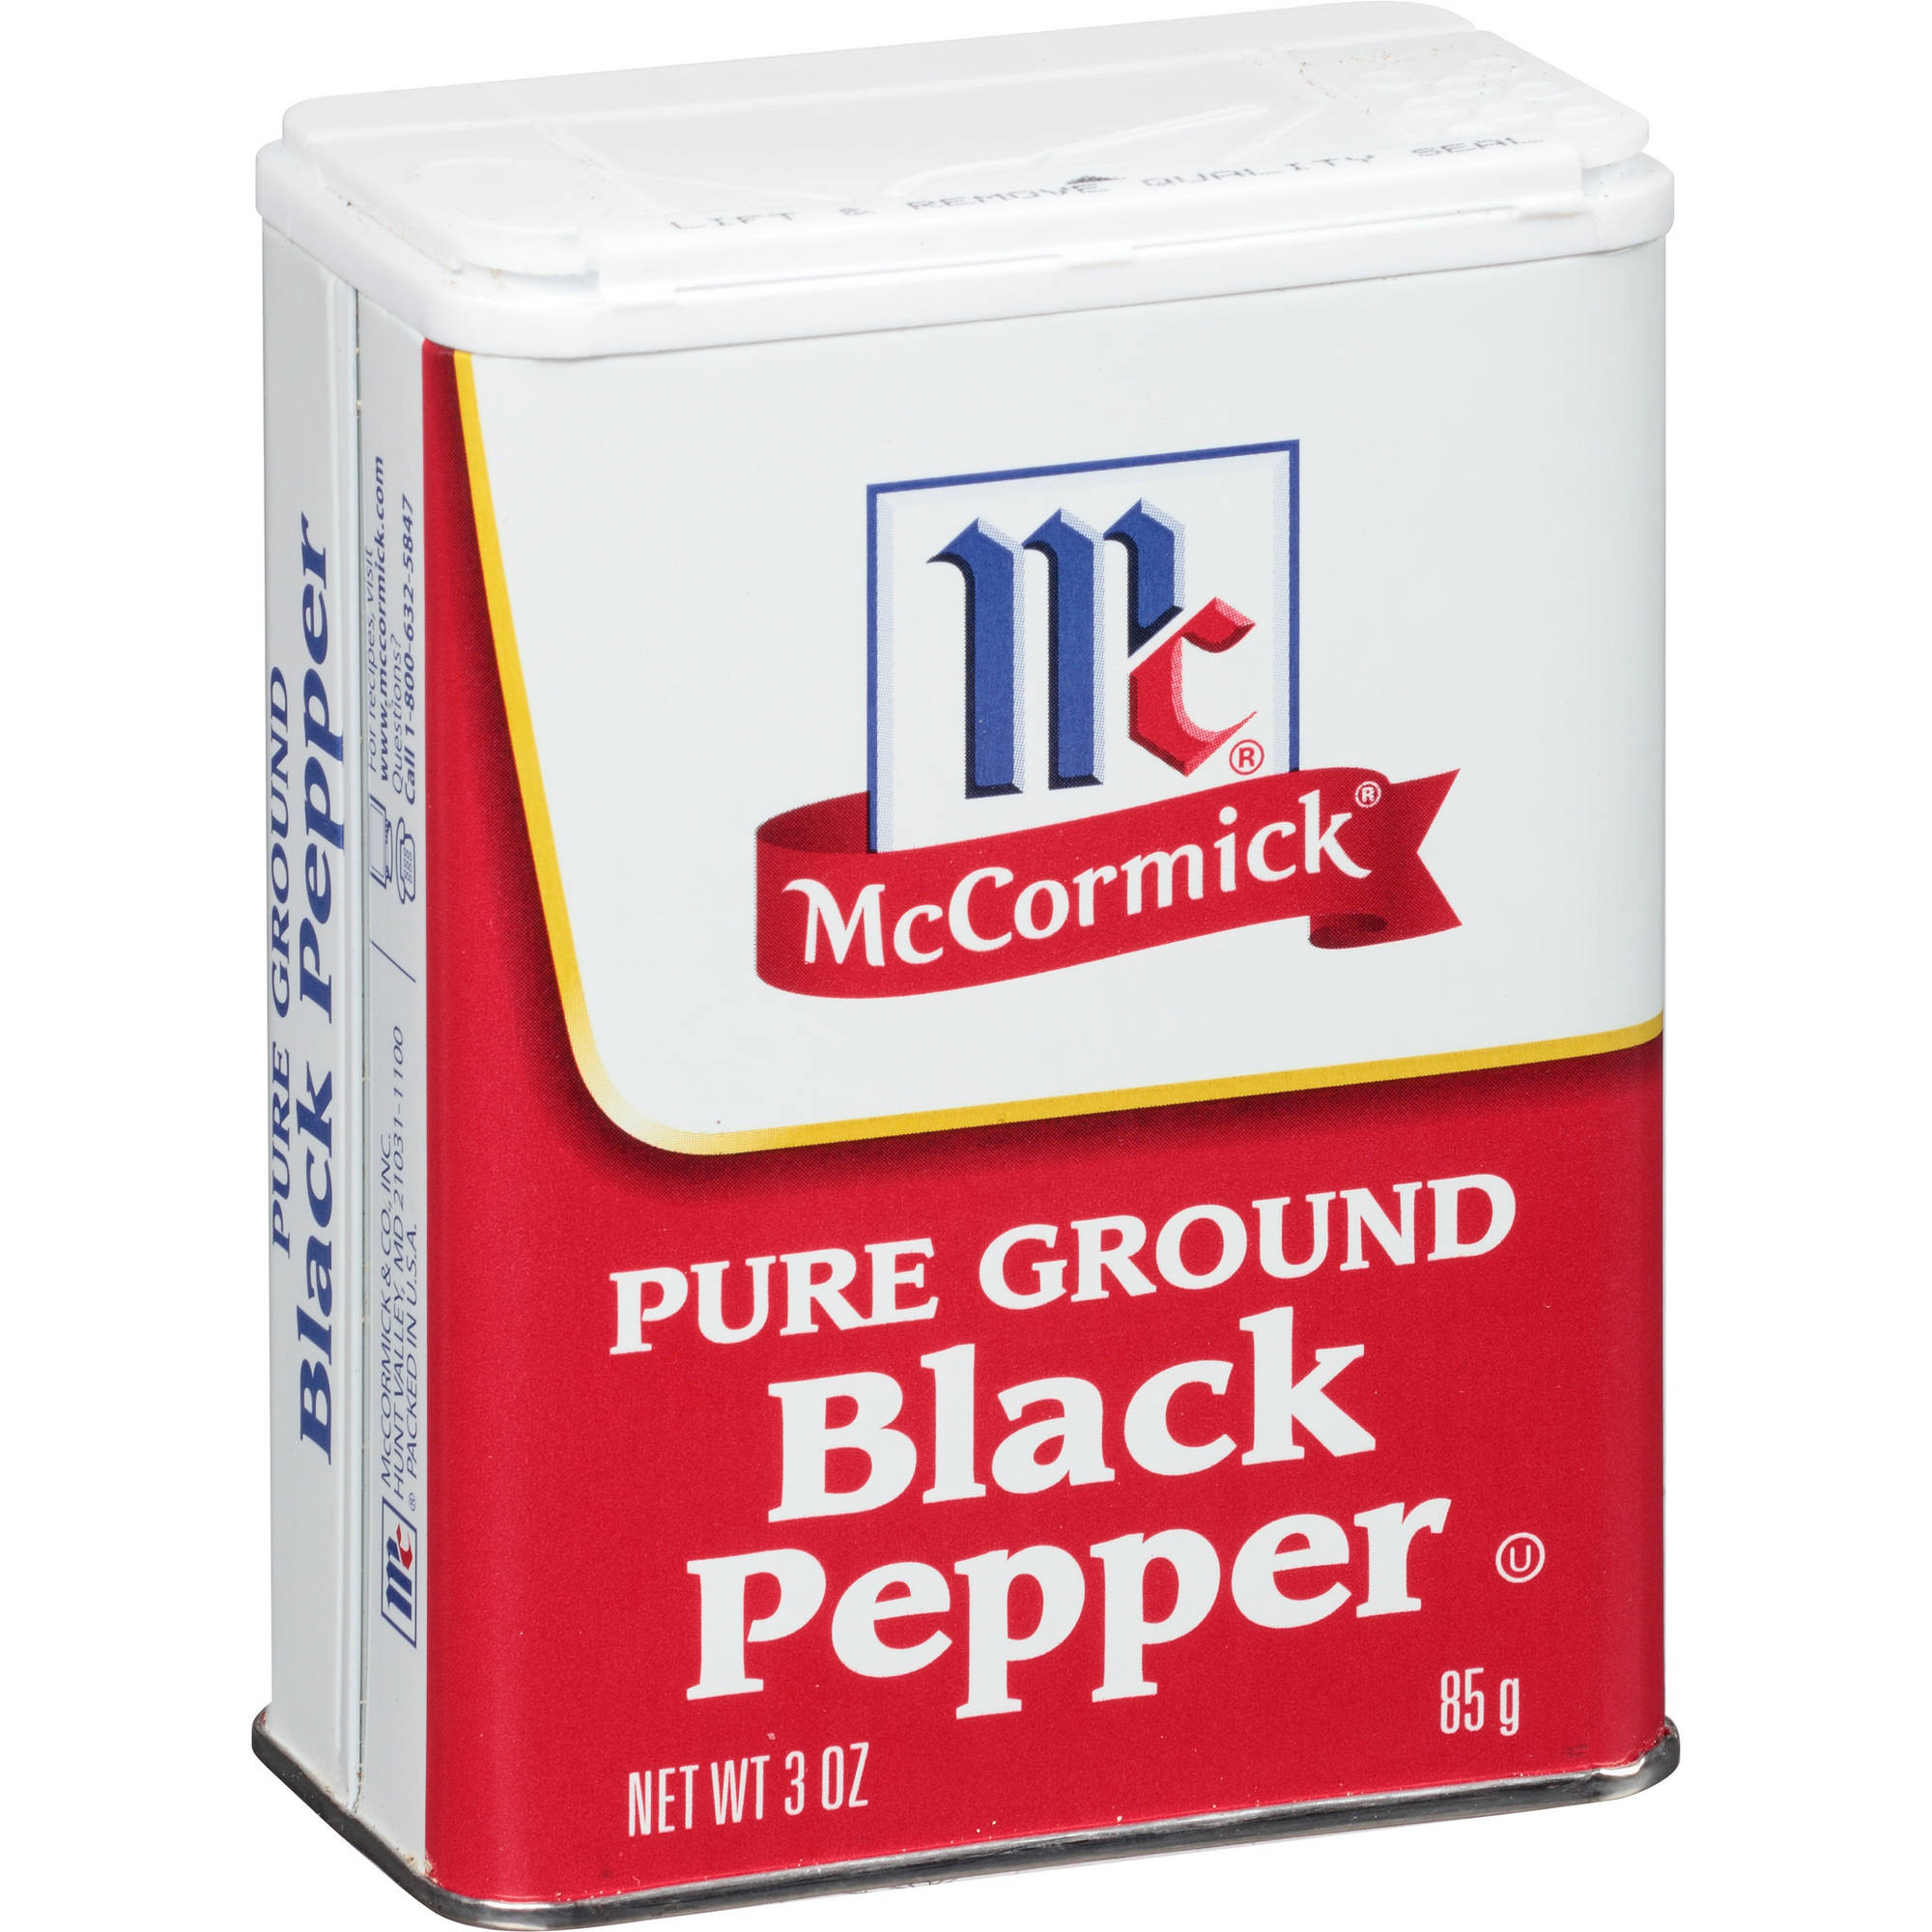 McCormick Pure Ground Black Pepper, 3 oz